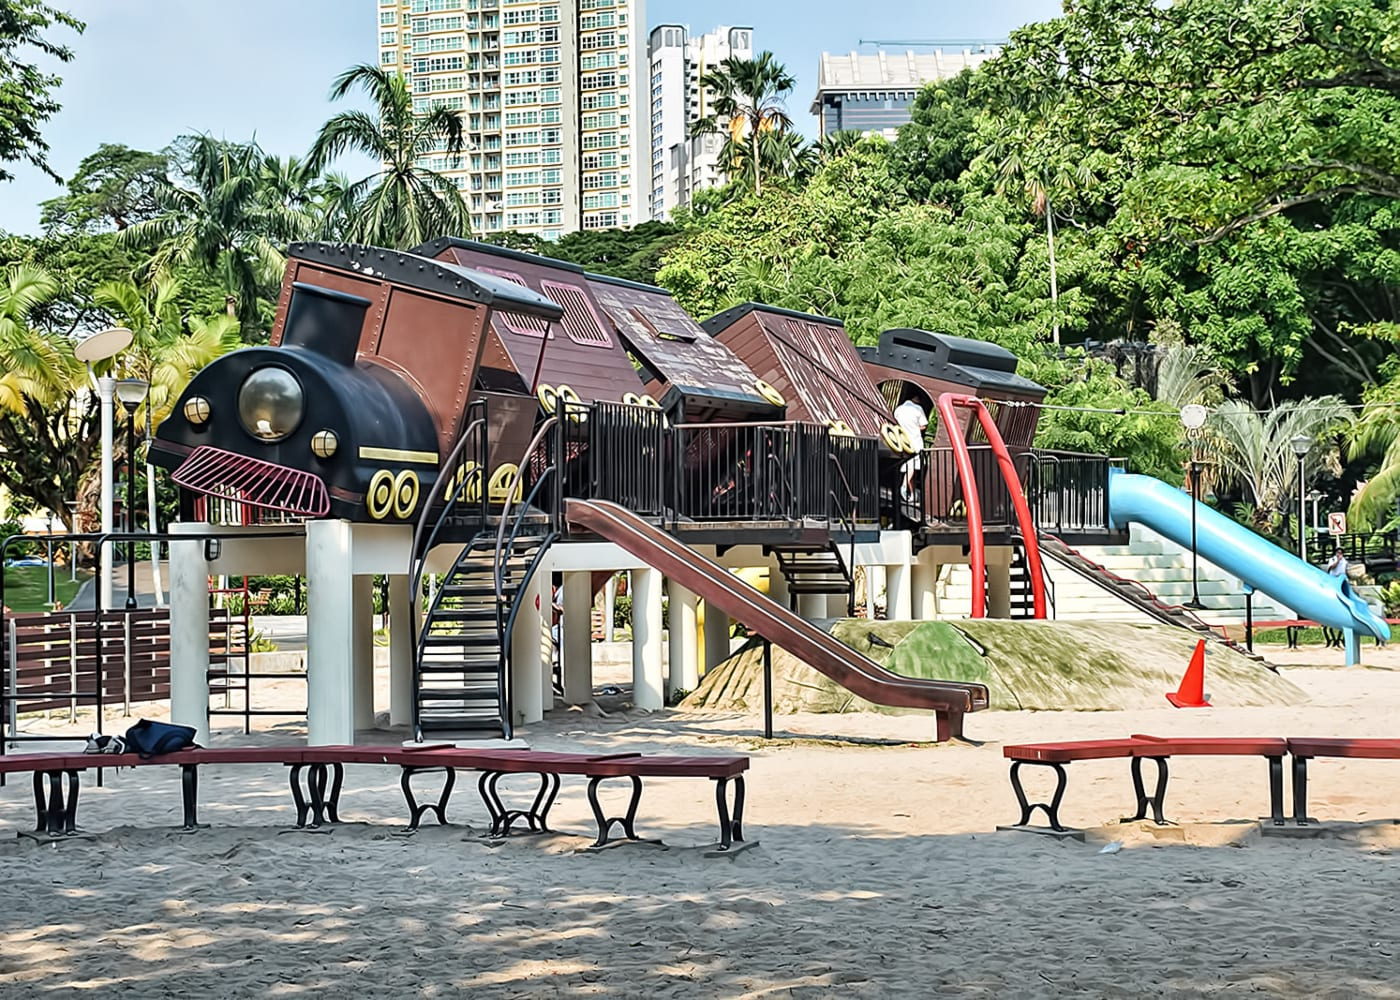 tiong bahru playground park | Best playgrounds and parks in Singapore for kids of all ages